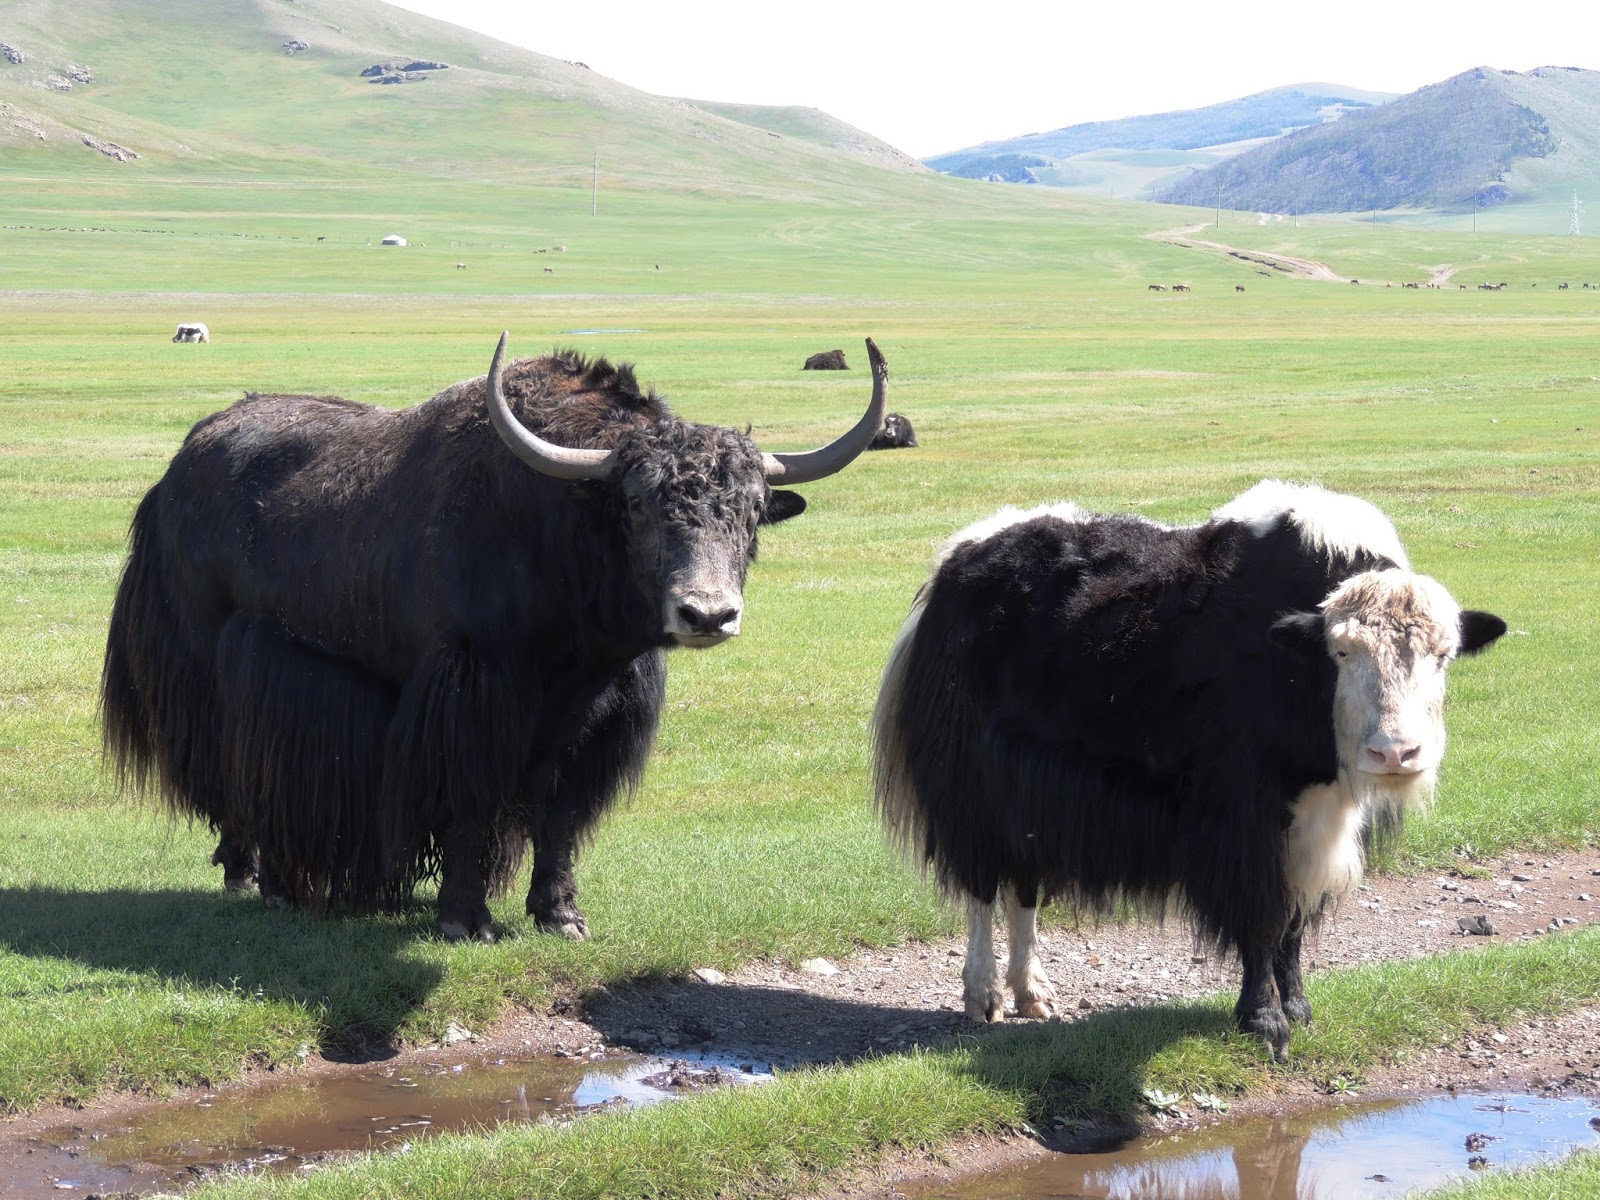 Image Of A Yak: Nexus Expedition: September 2013